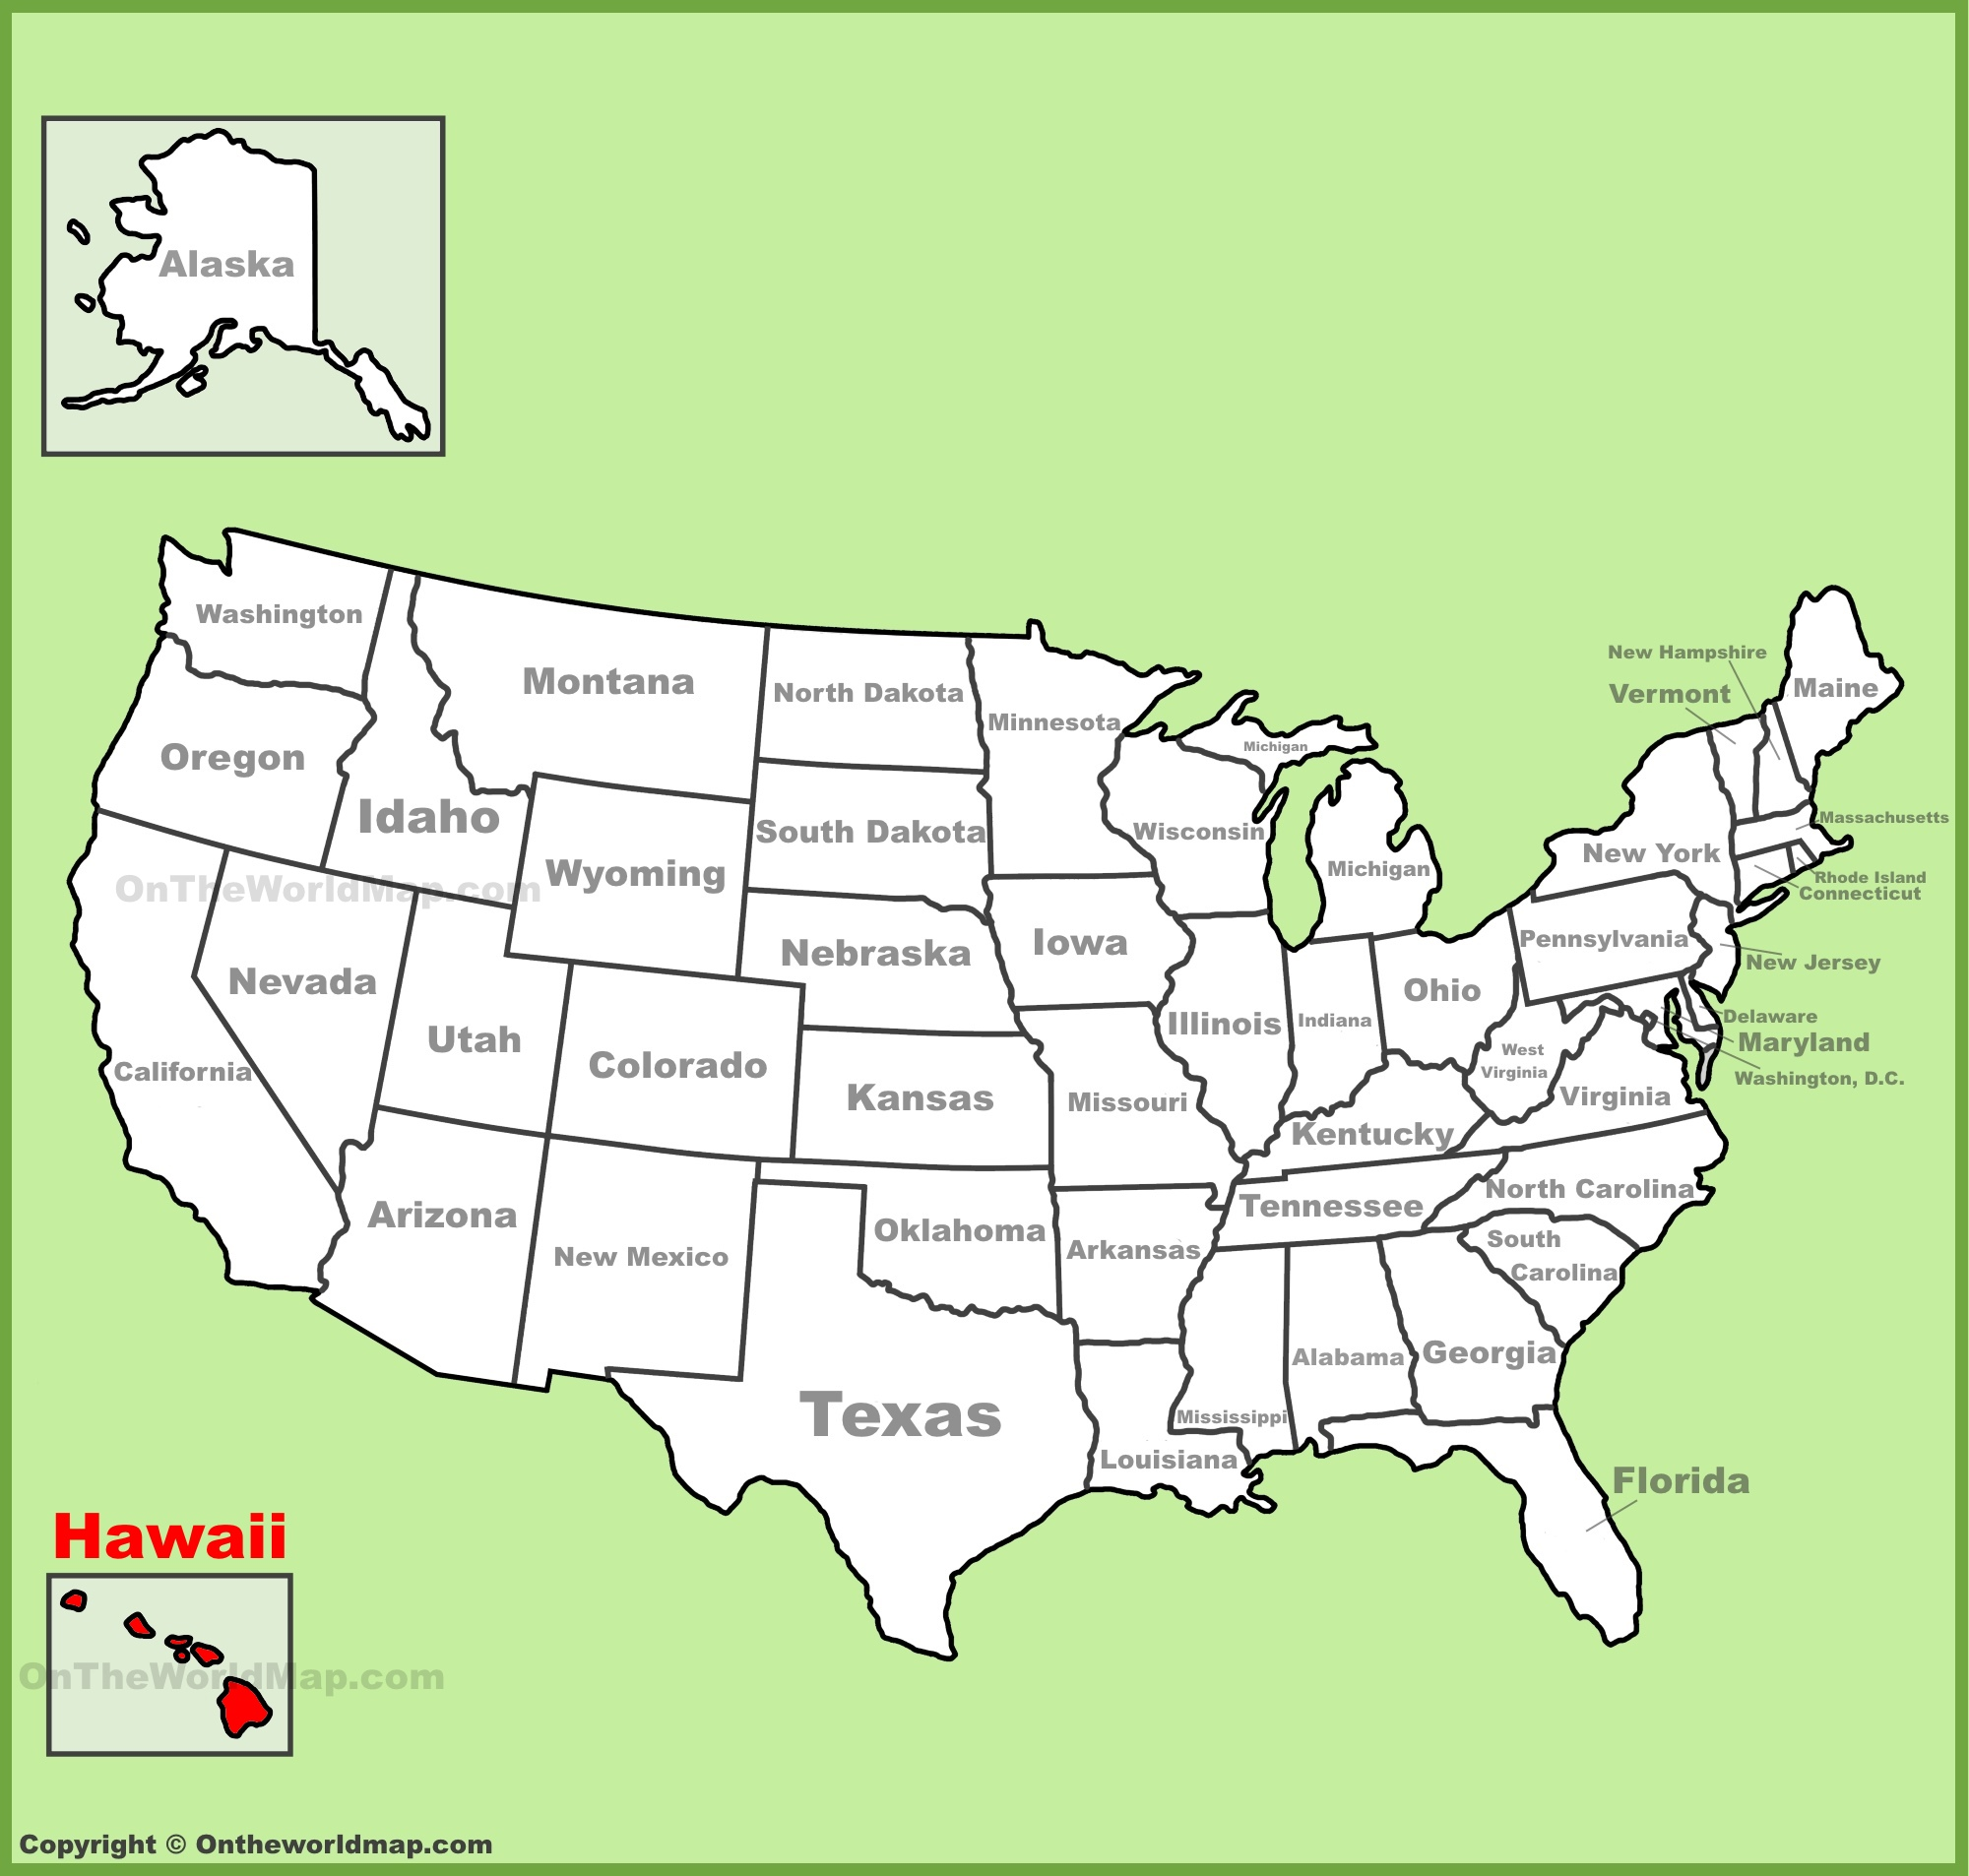 Hawaii State Maps USA Maps Of Hawaii Hawaiian Islands - Usa map with hawaii and alaska